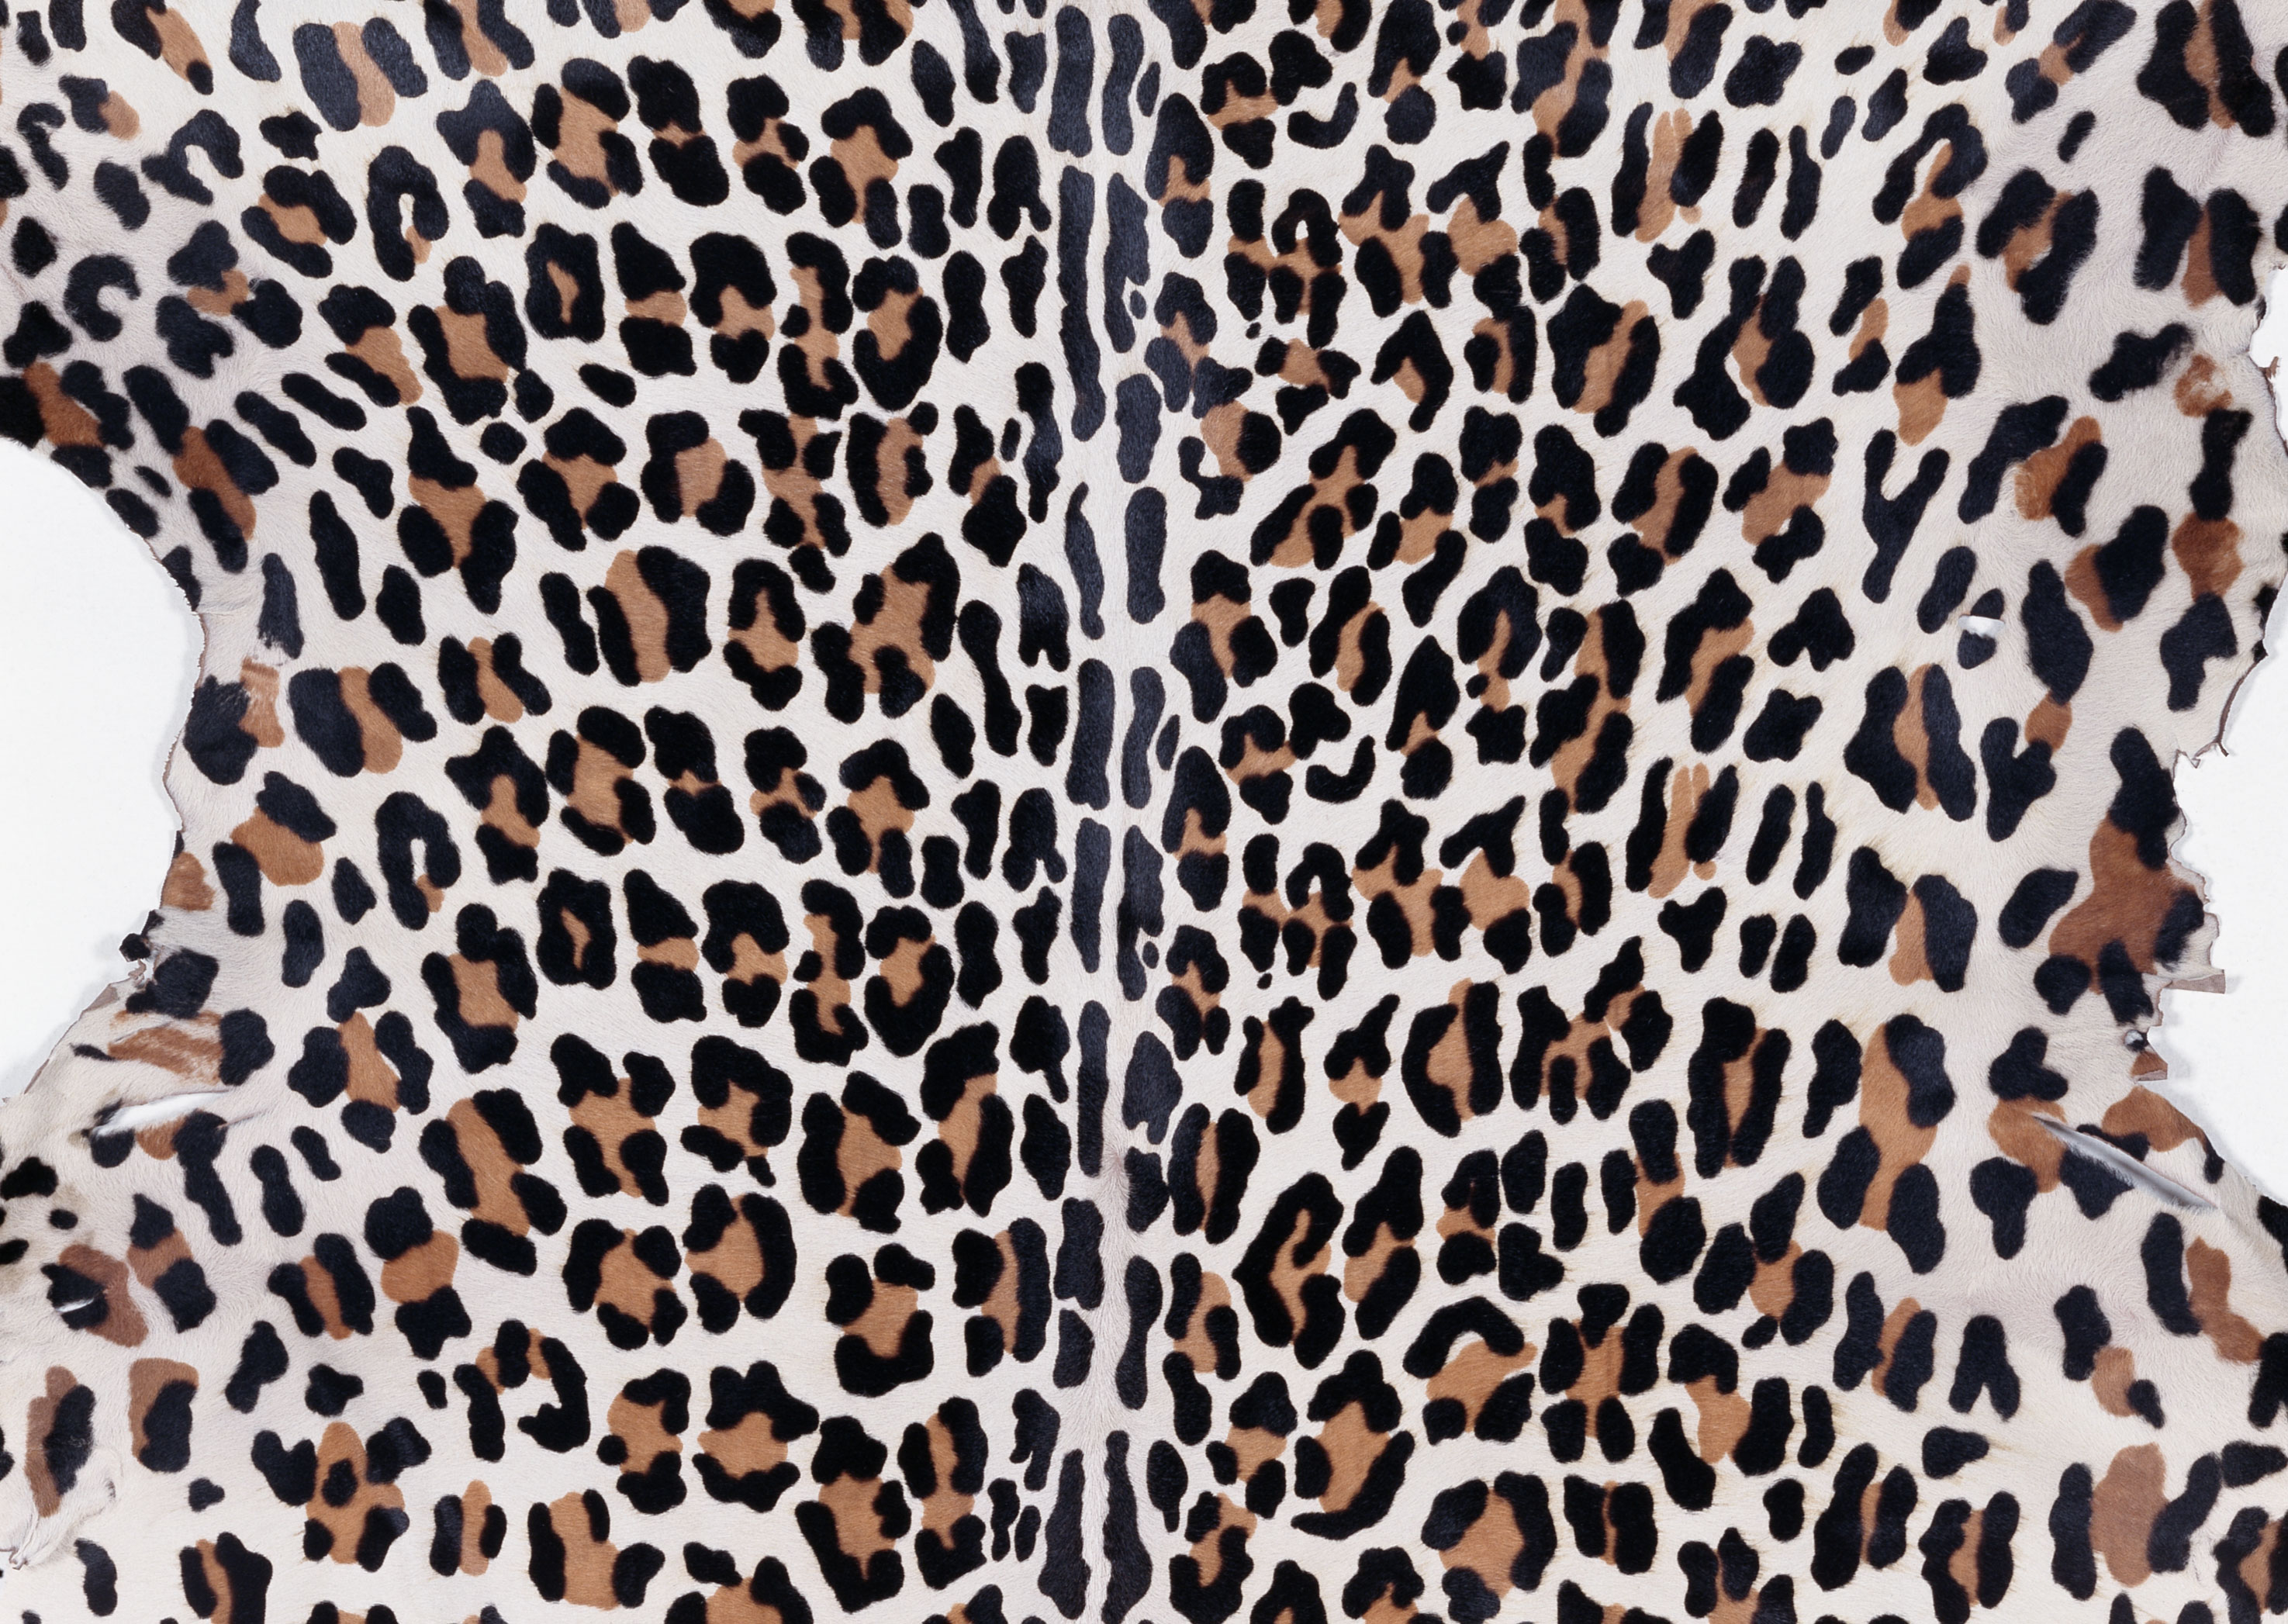 animal leopard skin texture, background